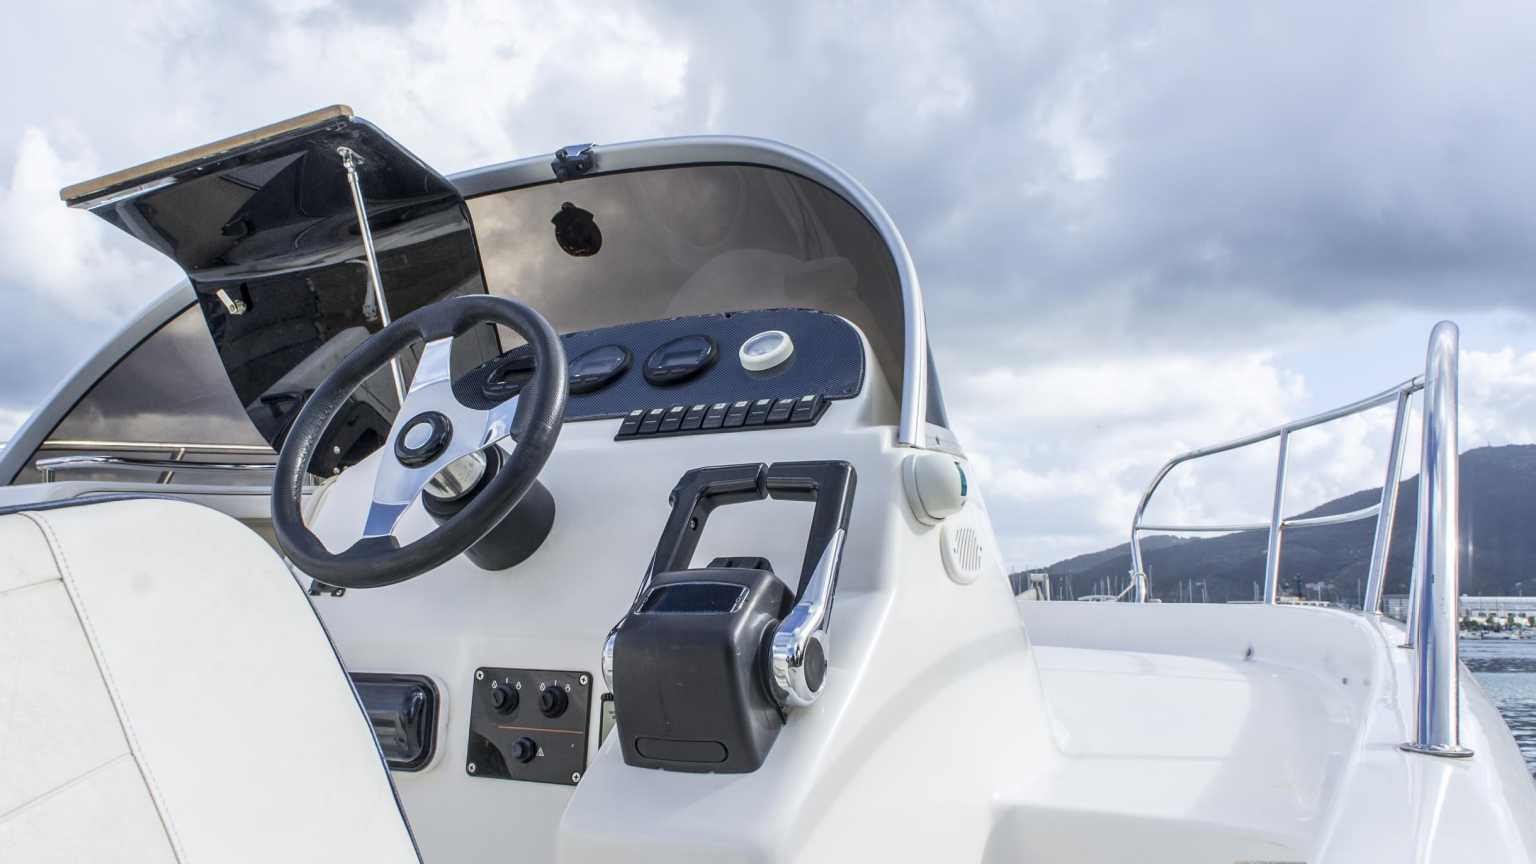 Drivers section of boat